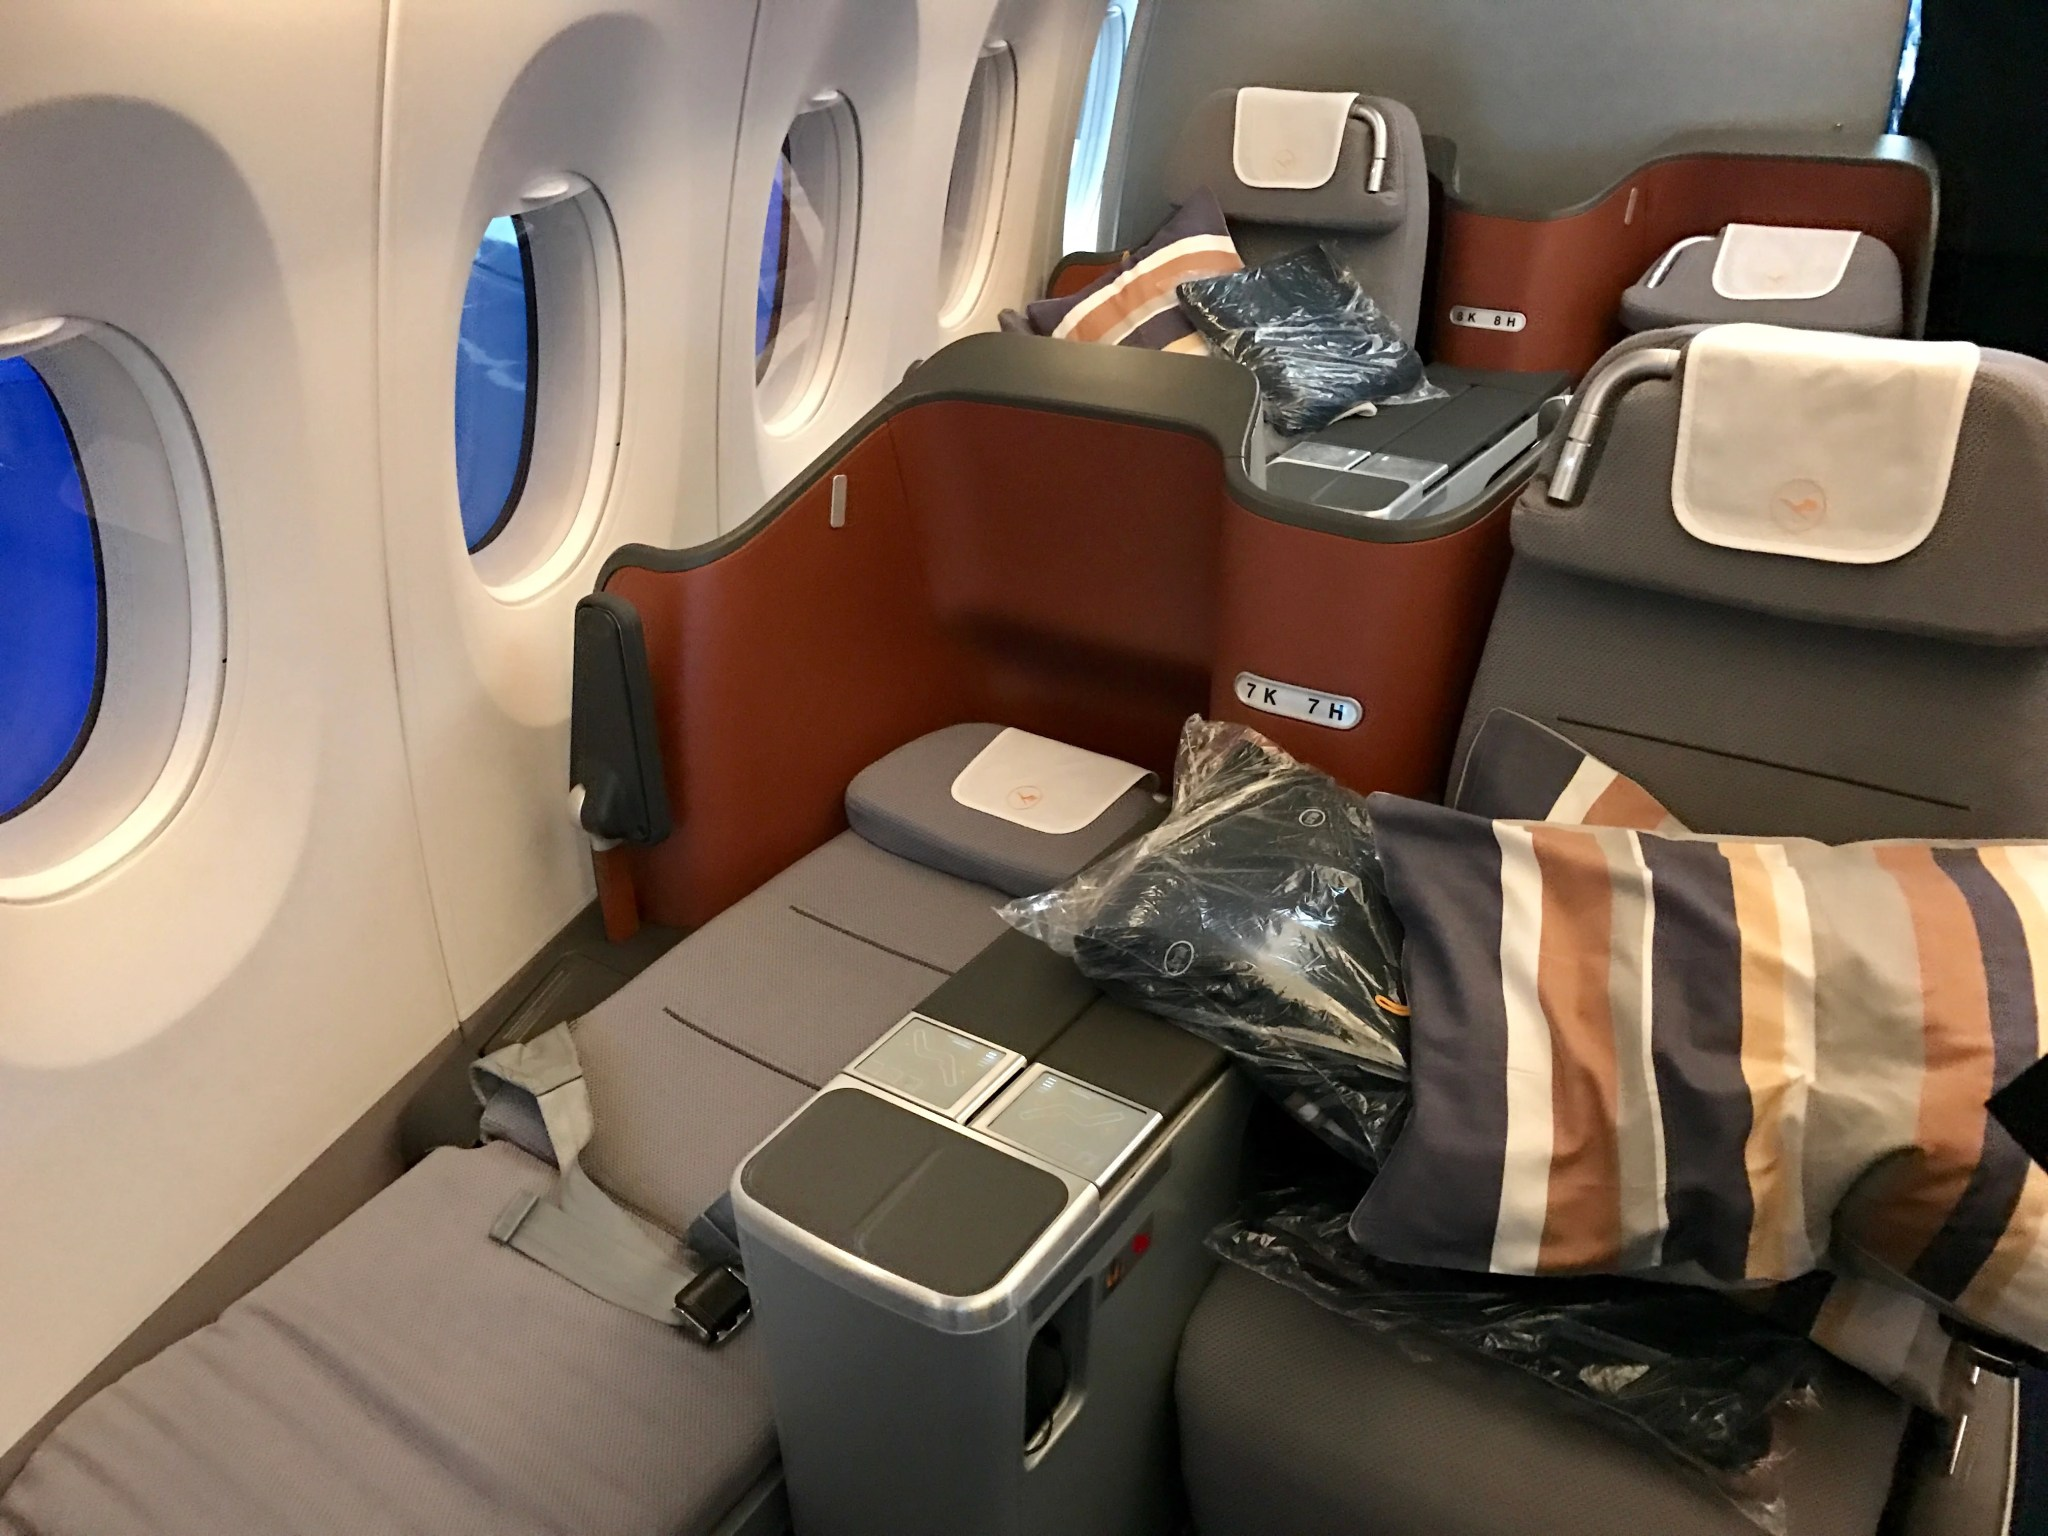 A Look Inside Lufthansa's First Airbus A350-900